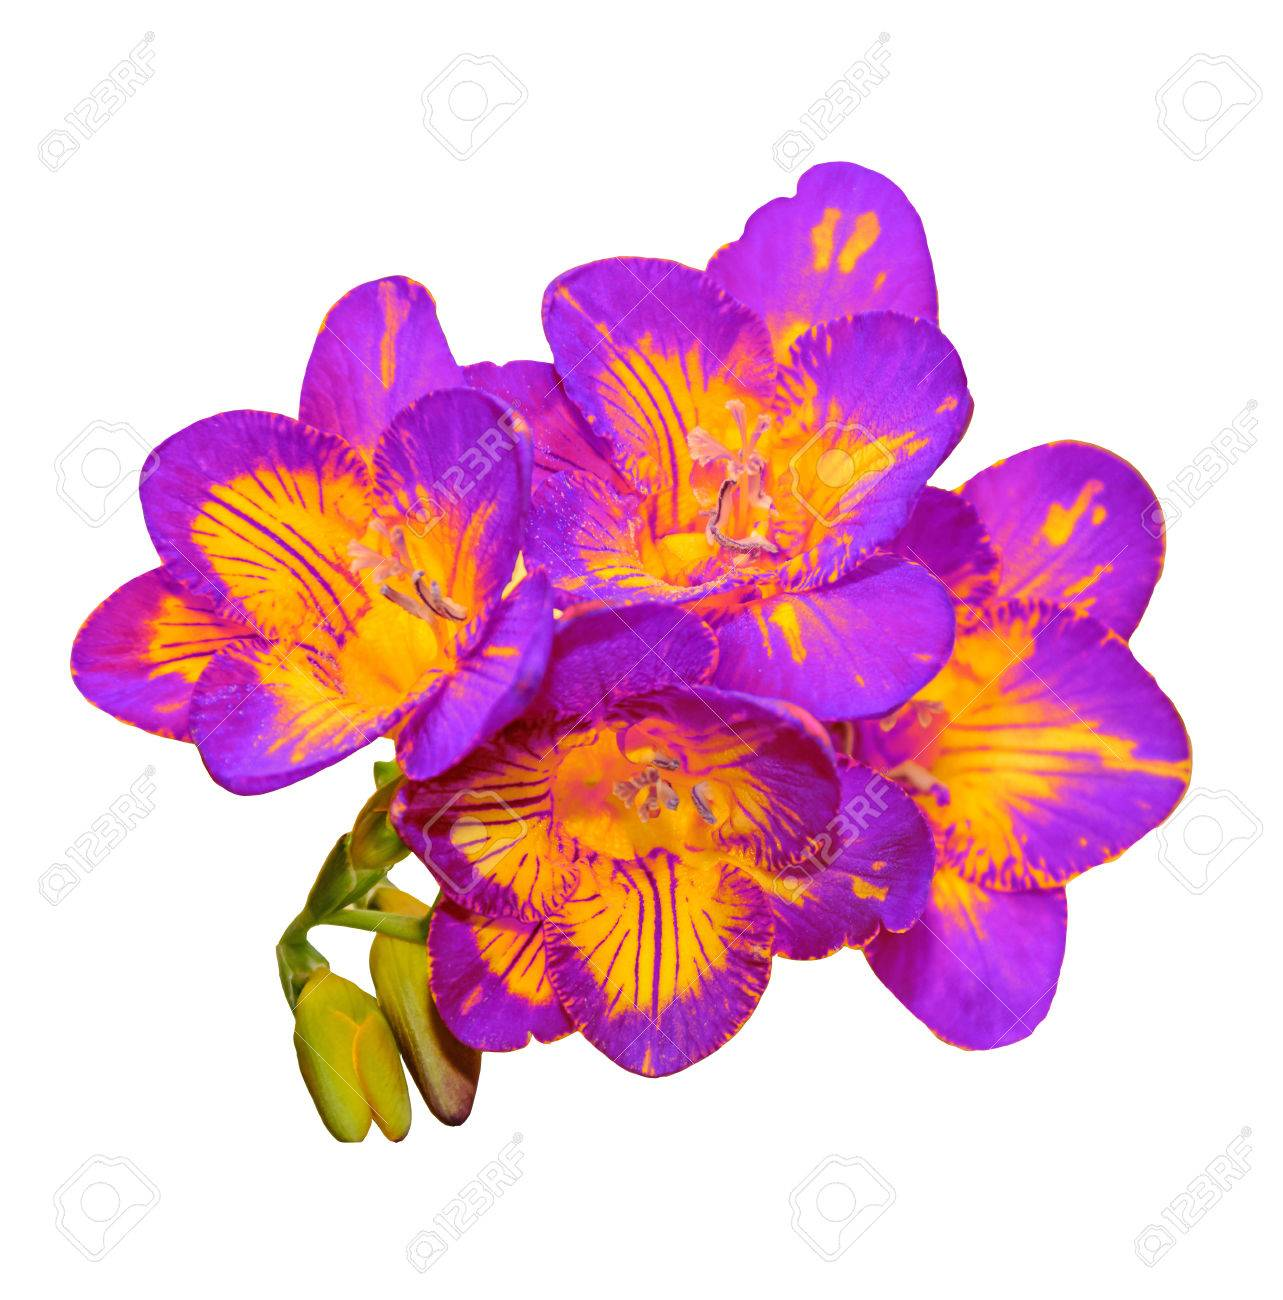 Mauve With Yellow Freesia Flower Green Buds Isolated On White